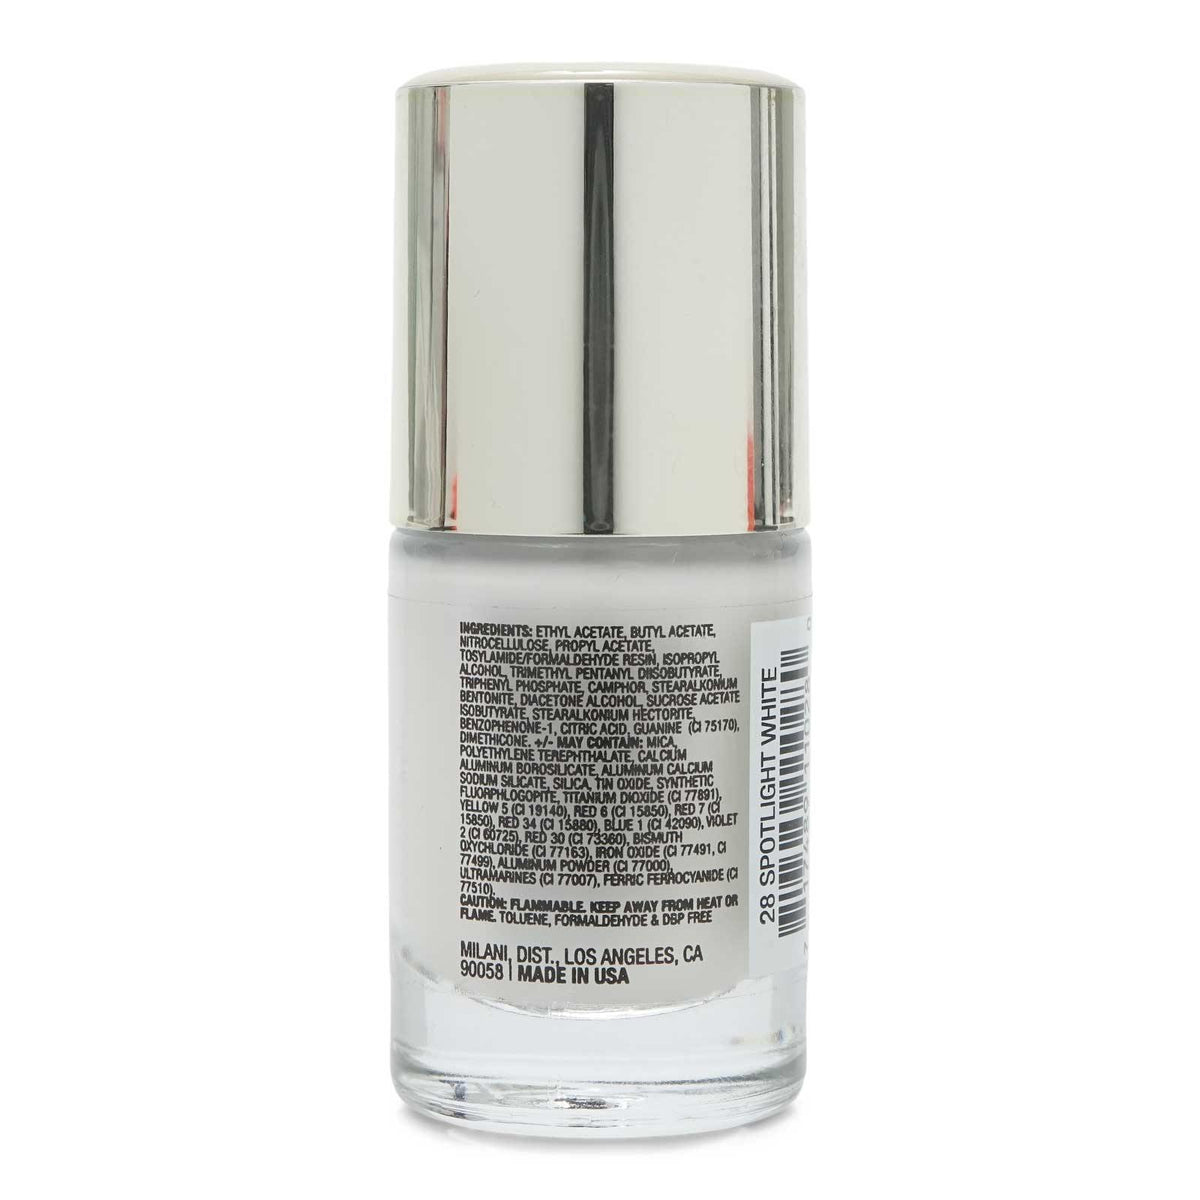 MILANI COLOR STATEMENT NAIL COLOR- SPOTLIGHT WHITE (24/cs)